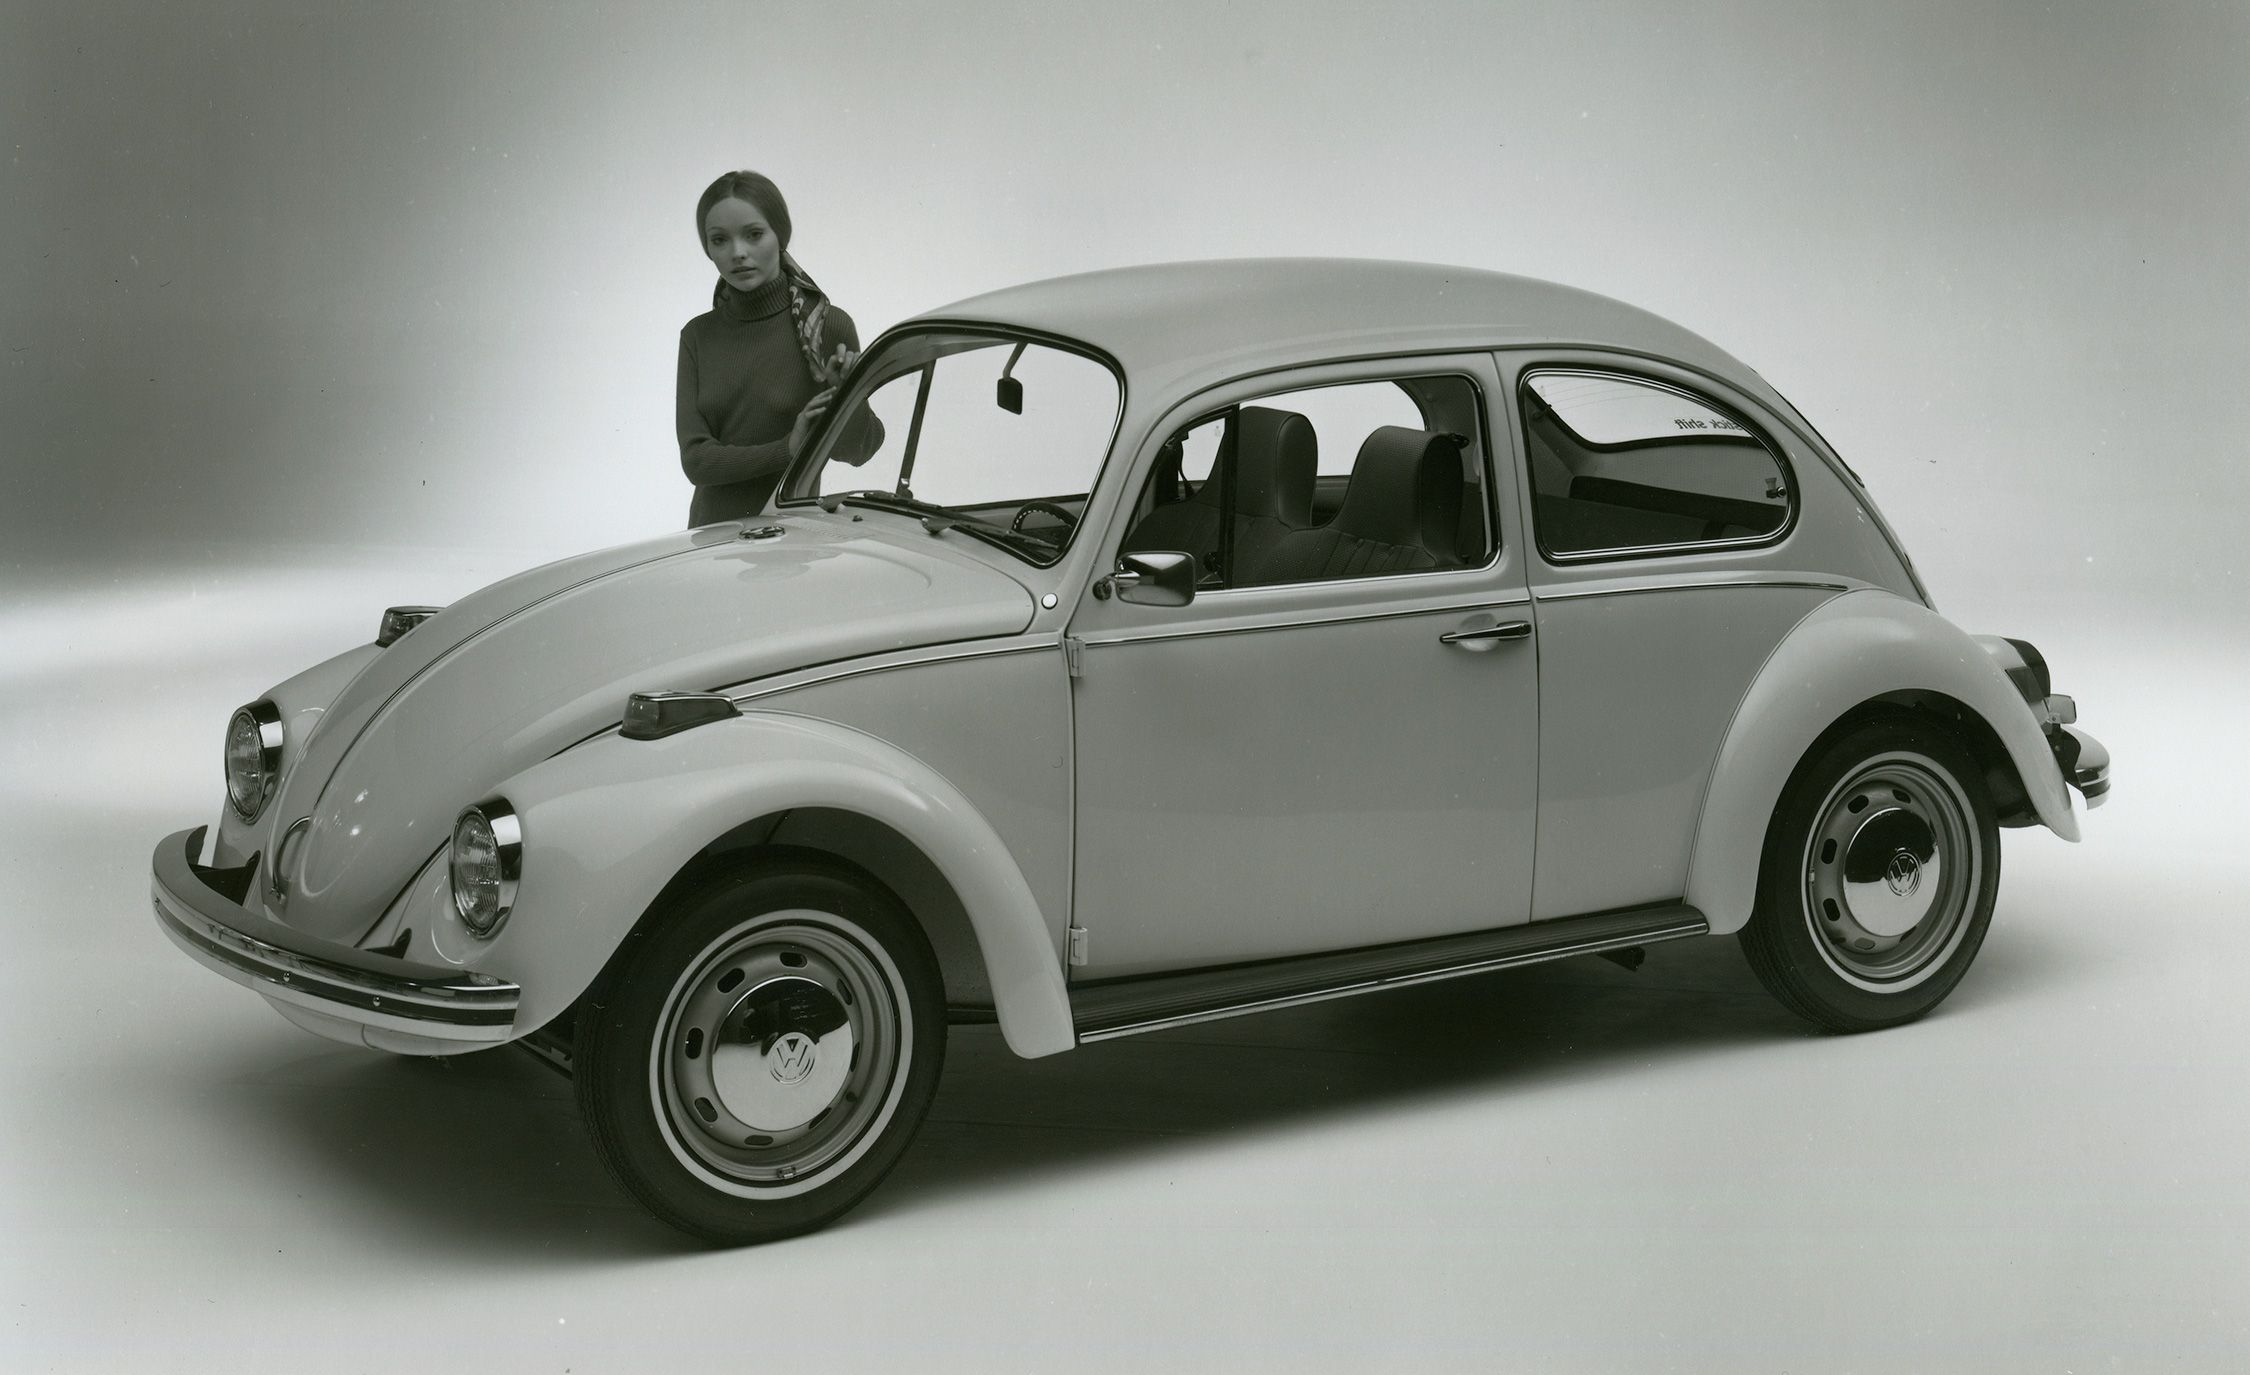 hight resolution of volkswagen beetle models by year old and classic vw bugs stick shift electrical circuit diagram vw beetle early model stick